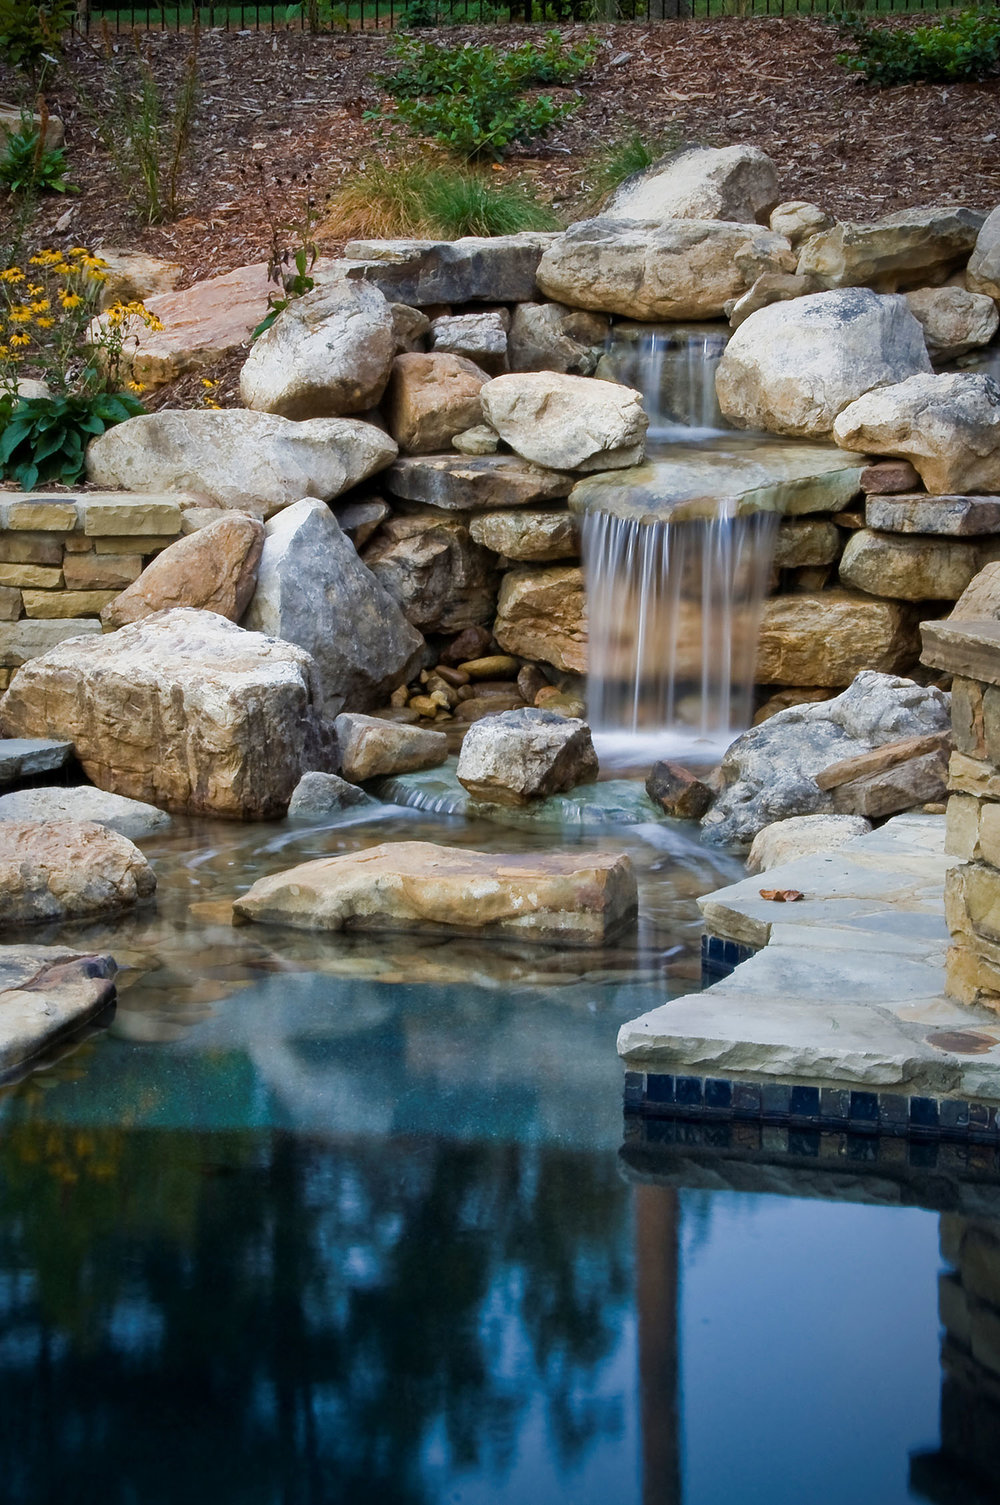 Waterfall With Stream Crossing: This beautifully-designed feature also acts as a water delivery system for the pool.